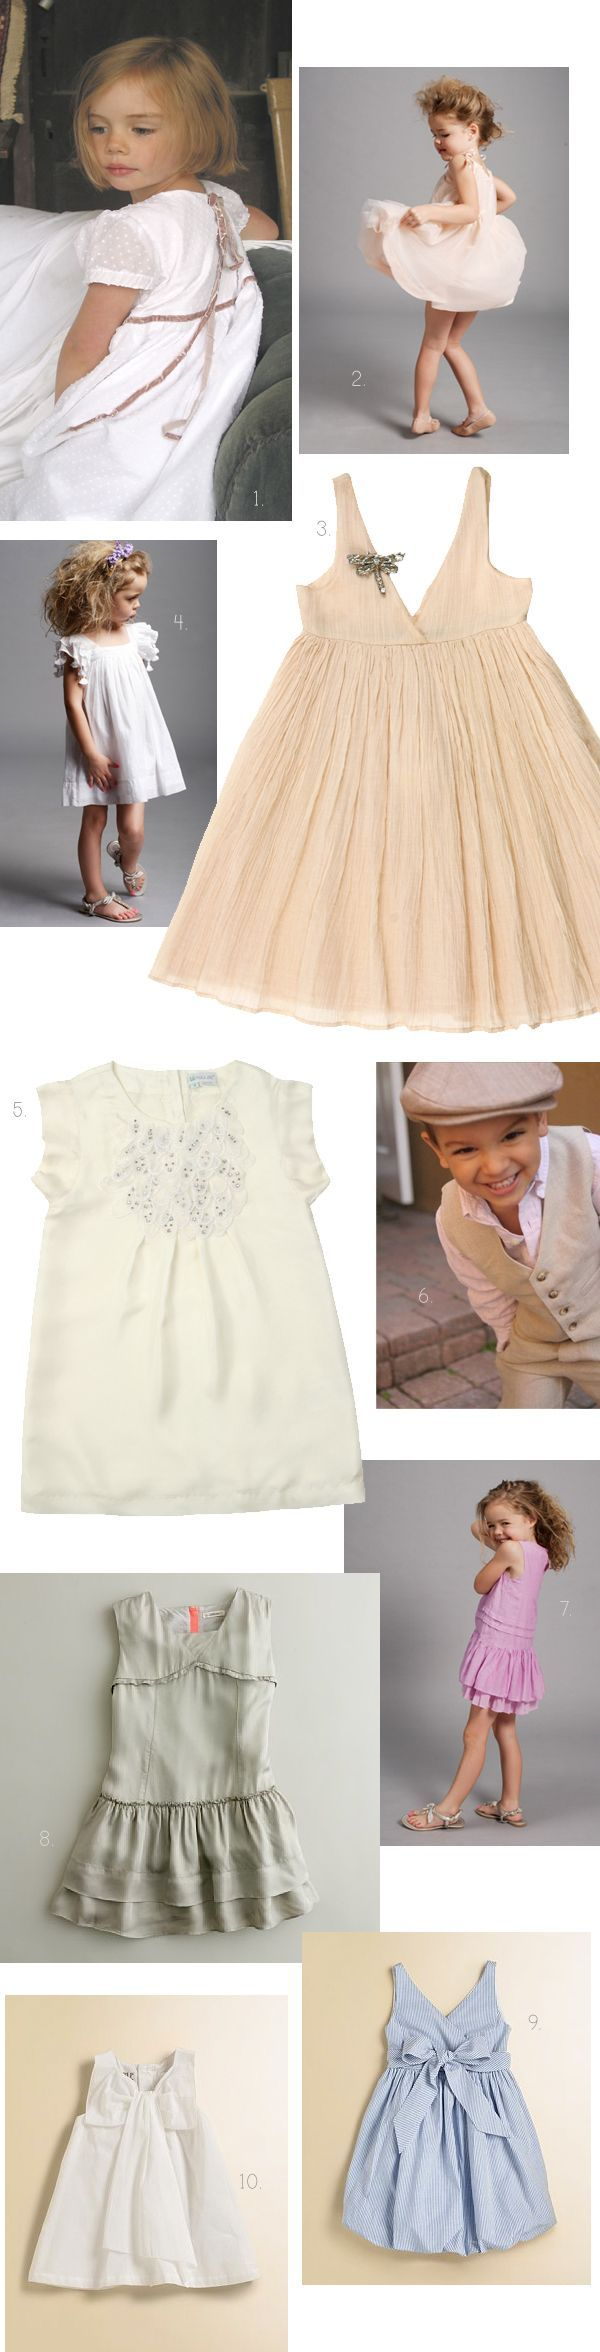 Alternative Flower Girl Dress Round Up